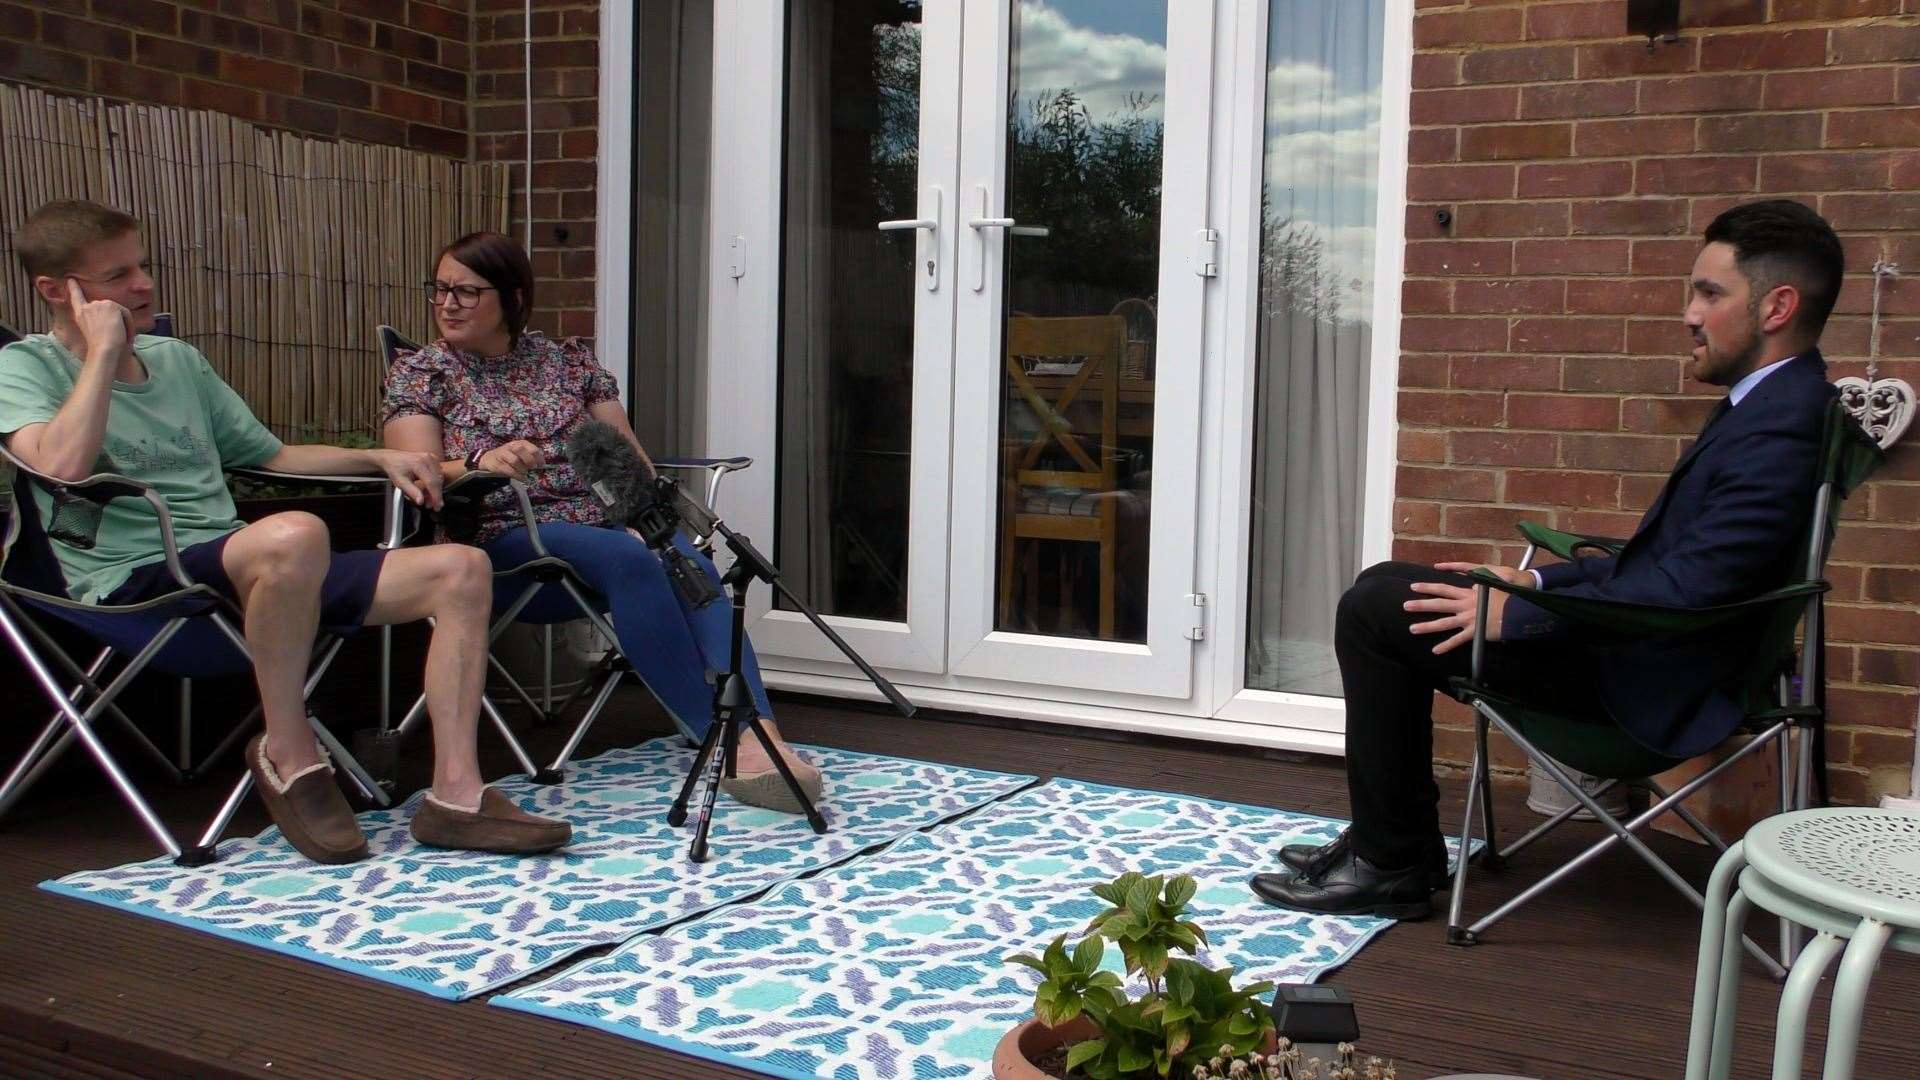 Darren and Lisa Moore talking to KMTV's Joe Coshan at their Swanley home